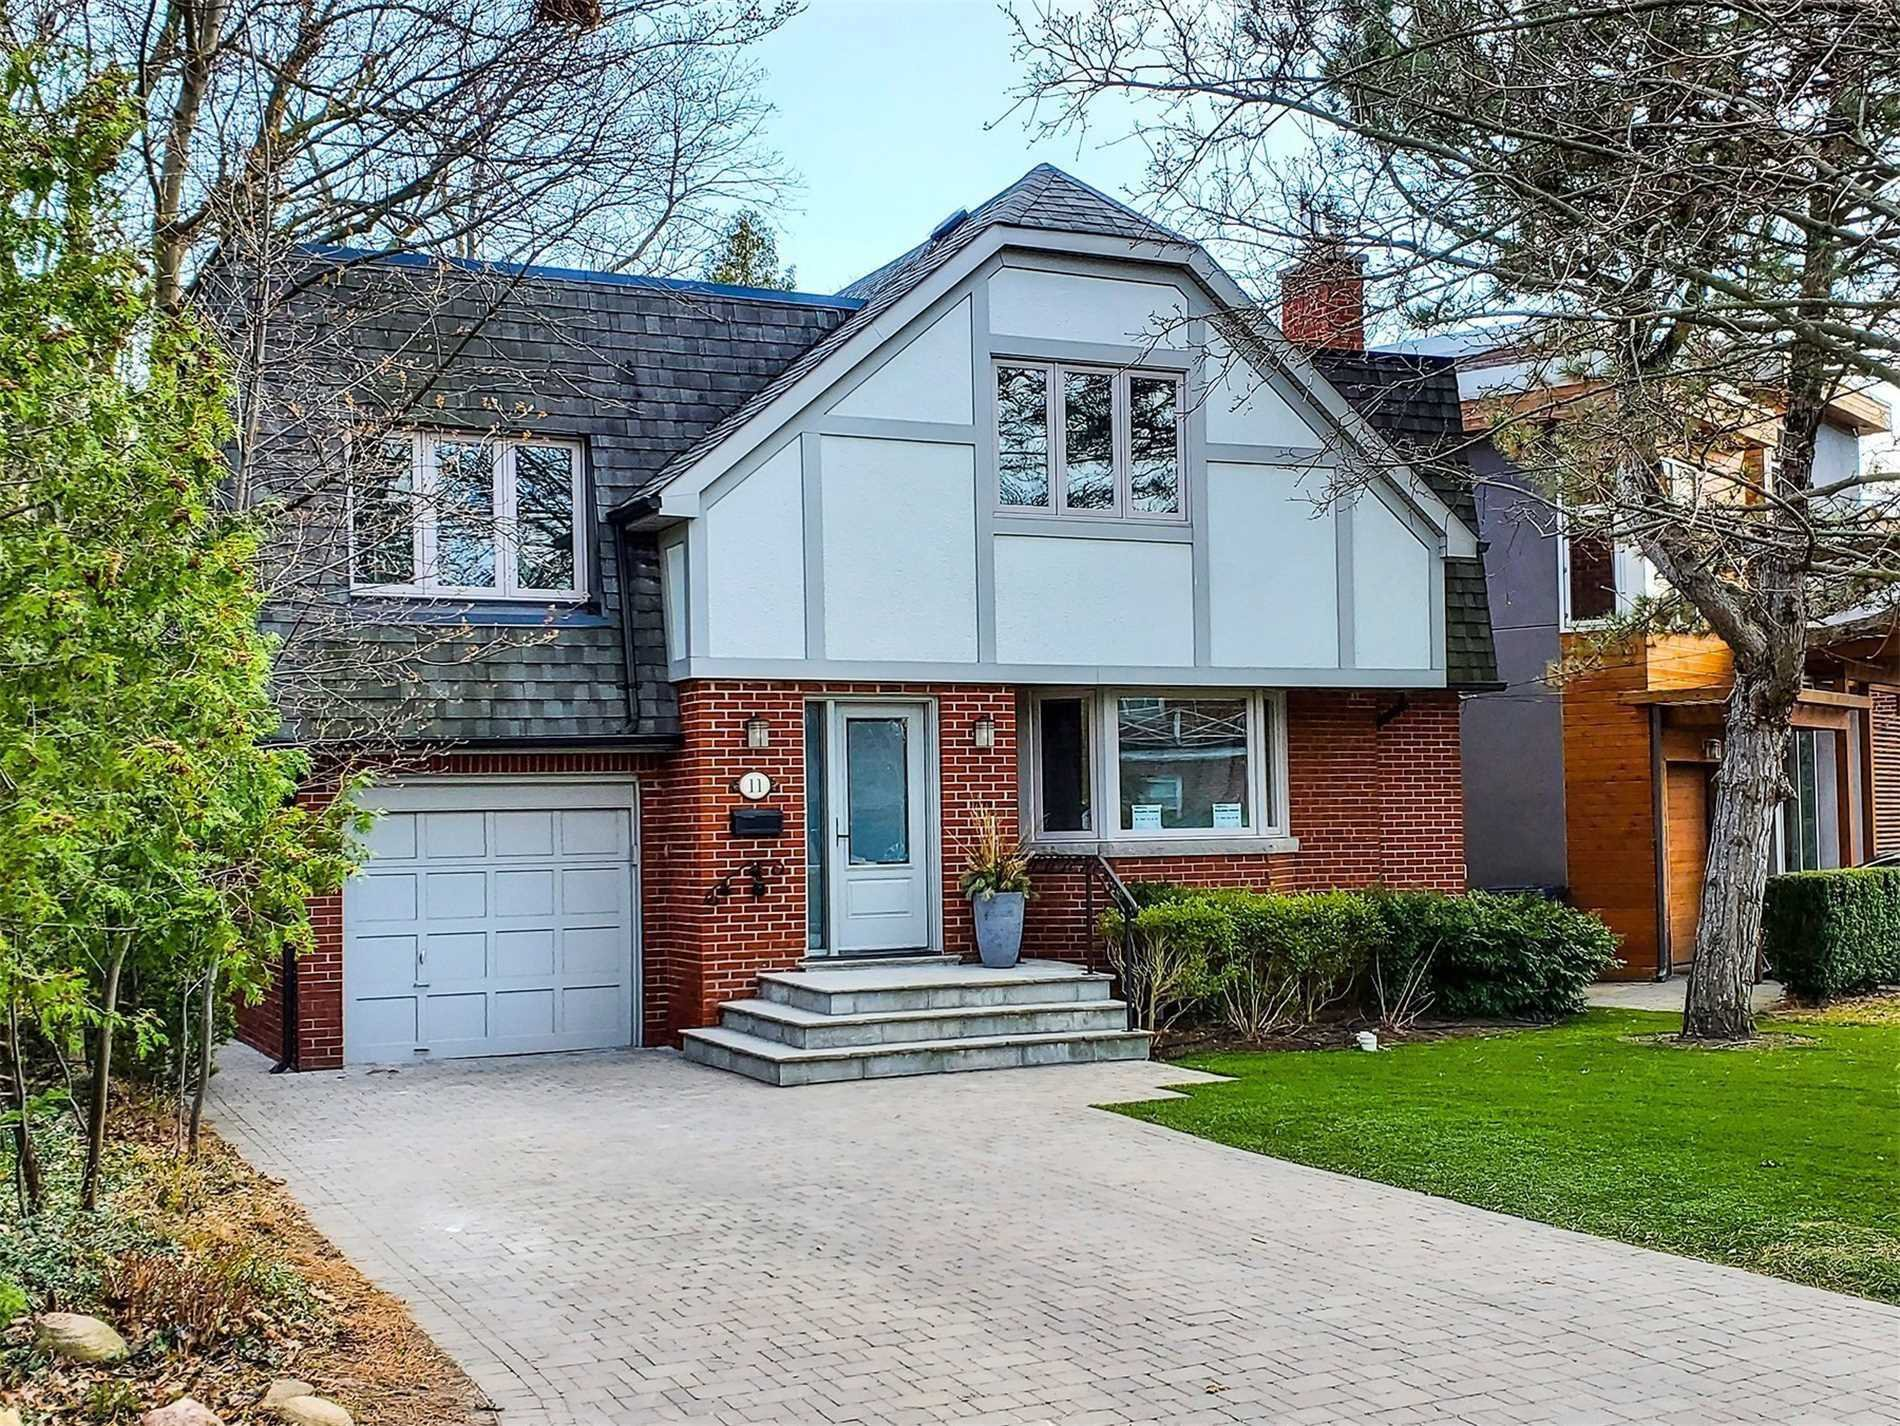 Main Photo: 11 Glen Oak Drive in Toronto: The Beaches House (2-Storey) for lease (Toronto E02)  : MLS®# E4758763